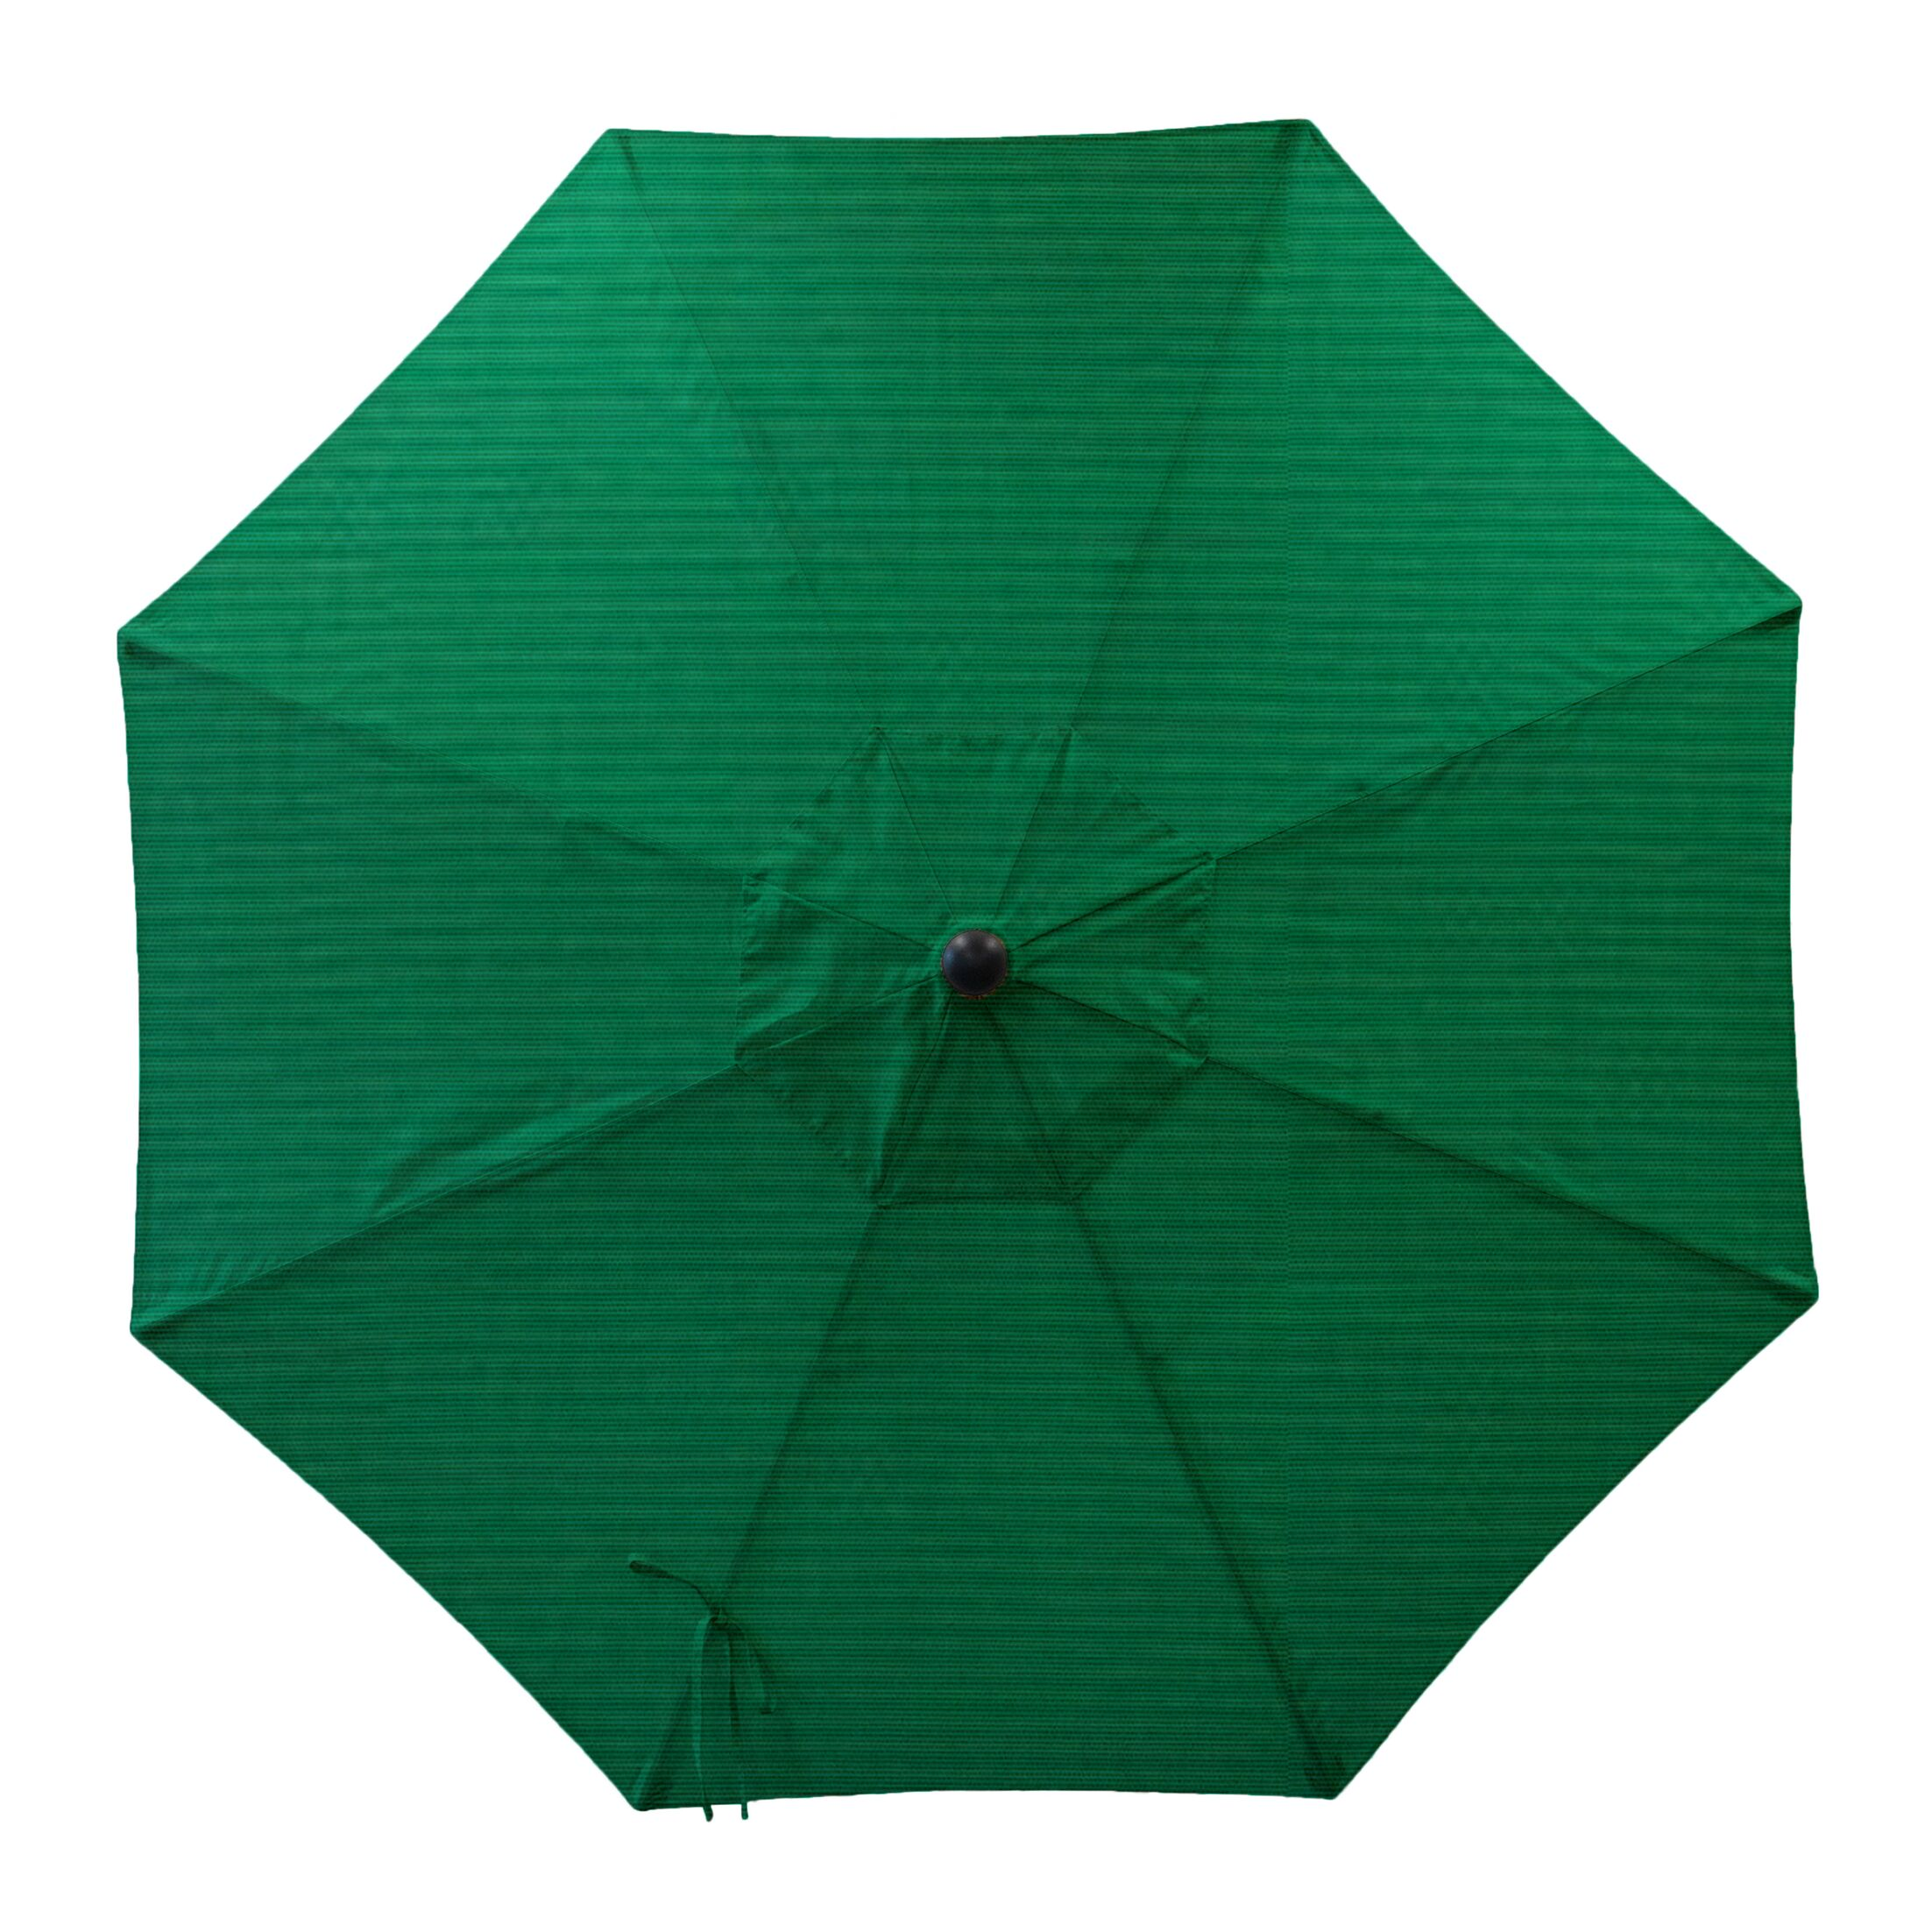 Centeno Double Pulley 9' Market Umbrella Frame Color: Black Sapphire, Fabric Color: Wheat